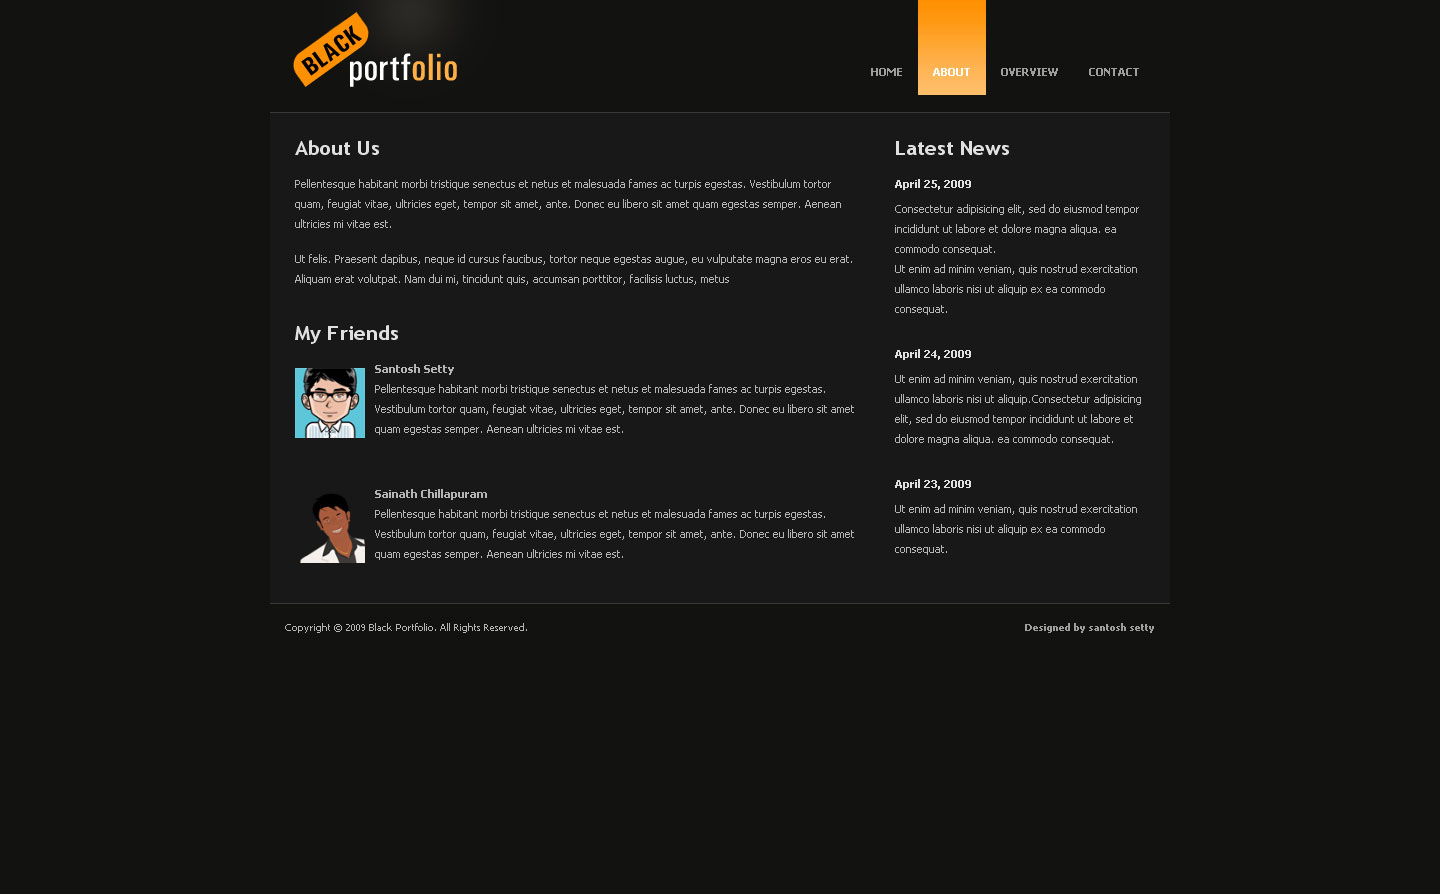 BLACK PORTFOLIO - About Page of Black Portfolio